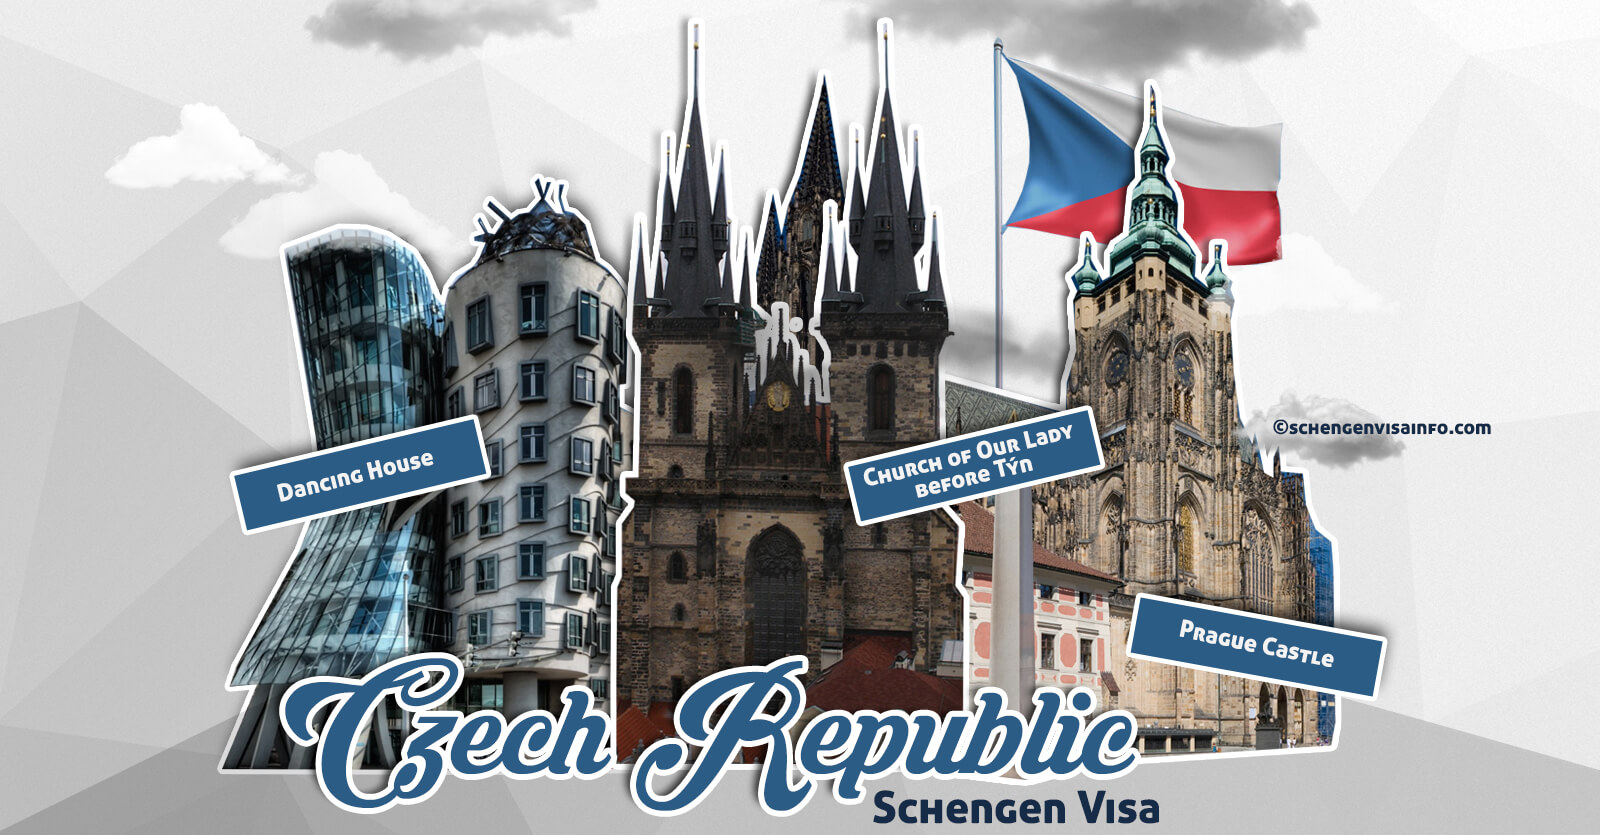 16 Czech Embassies Have Resumed Visa Operations - Others to Reopen on August 1 - SchengenVisaInfo.com